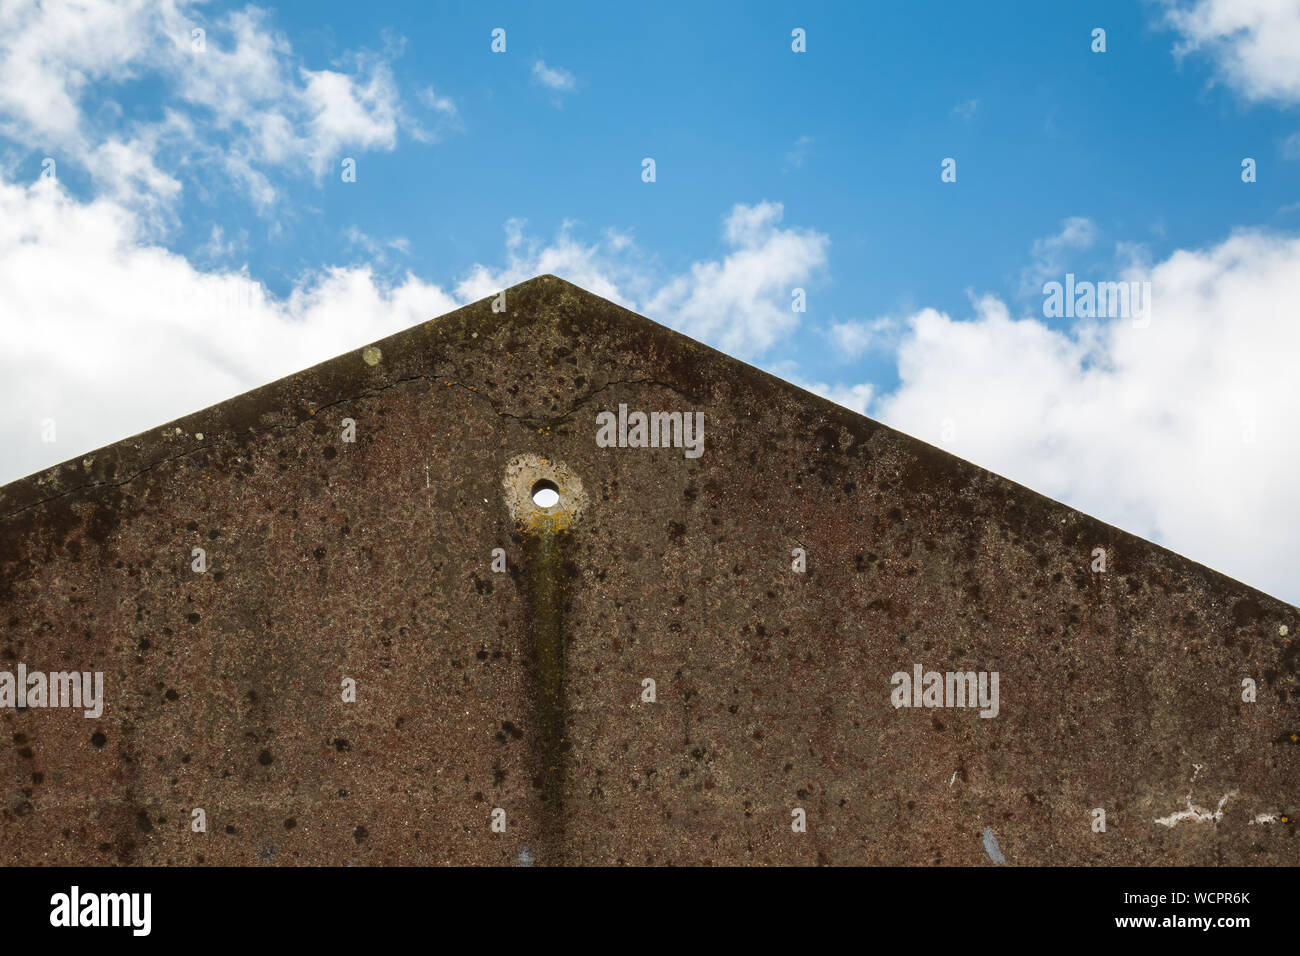 Wall of an old abandoned house, creating a tringle with the roof line. Circular hole in the wall. Blue sky with white clouds. Sao Miguel, Azores Islan Stock Photo